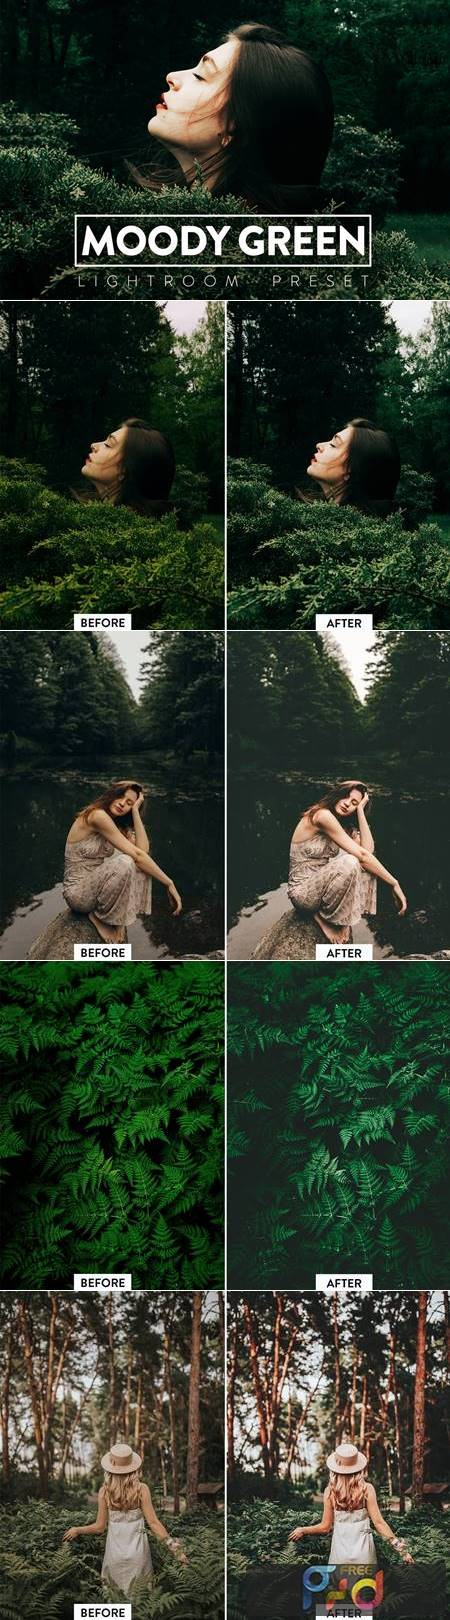 10 Moody Green Lightroom Presets 6YW9RS8 1